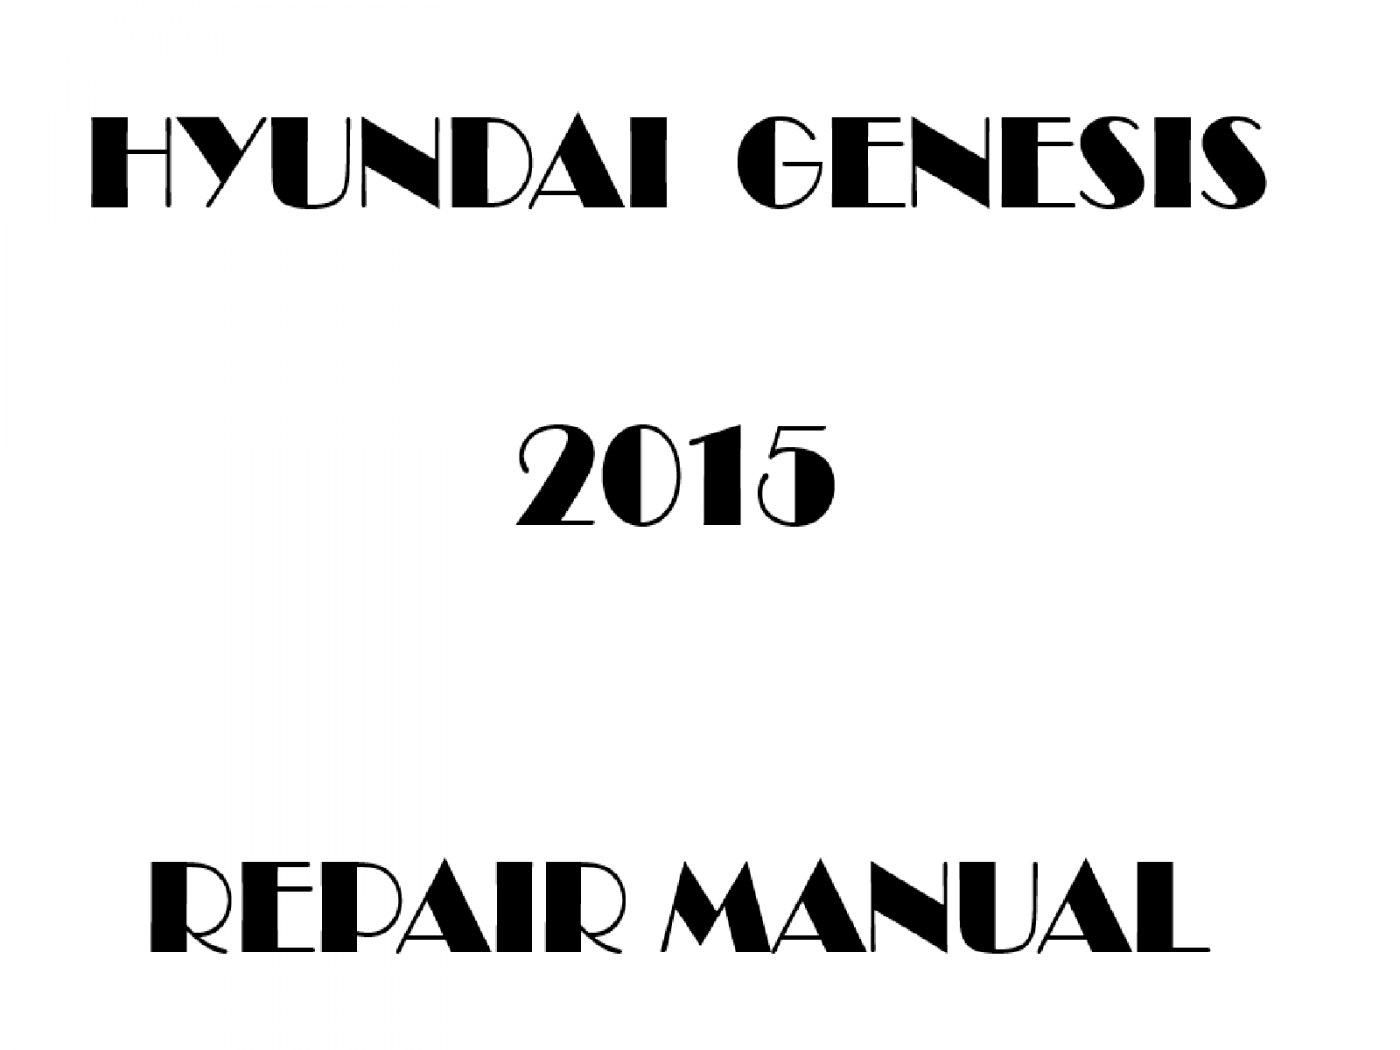 2015 Hyundai Genesis repair manual